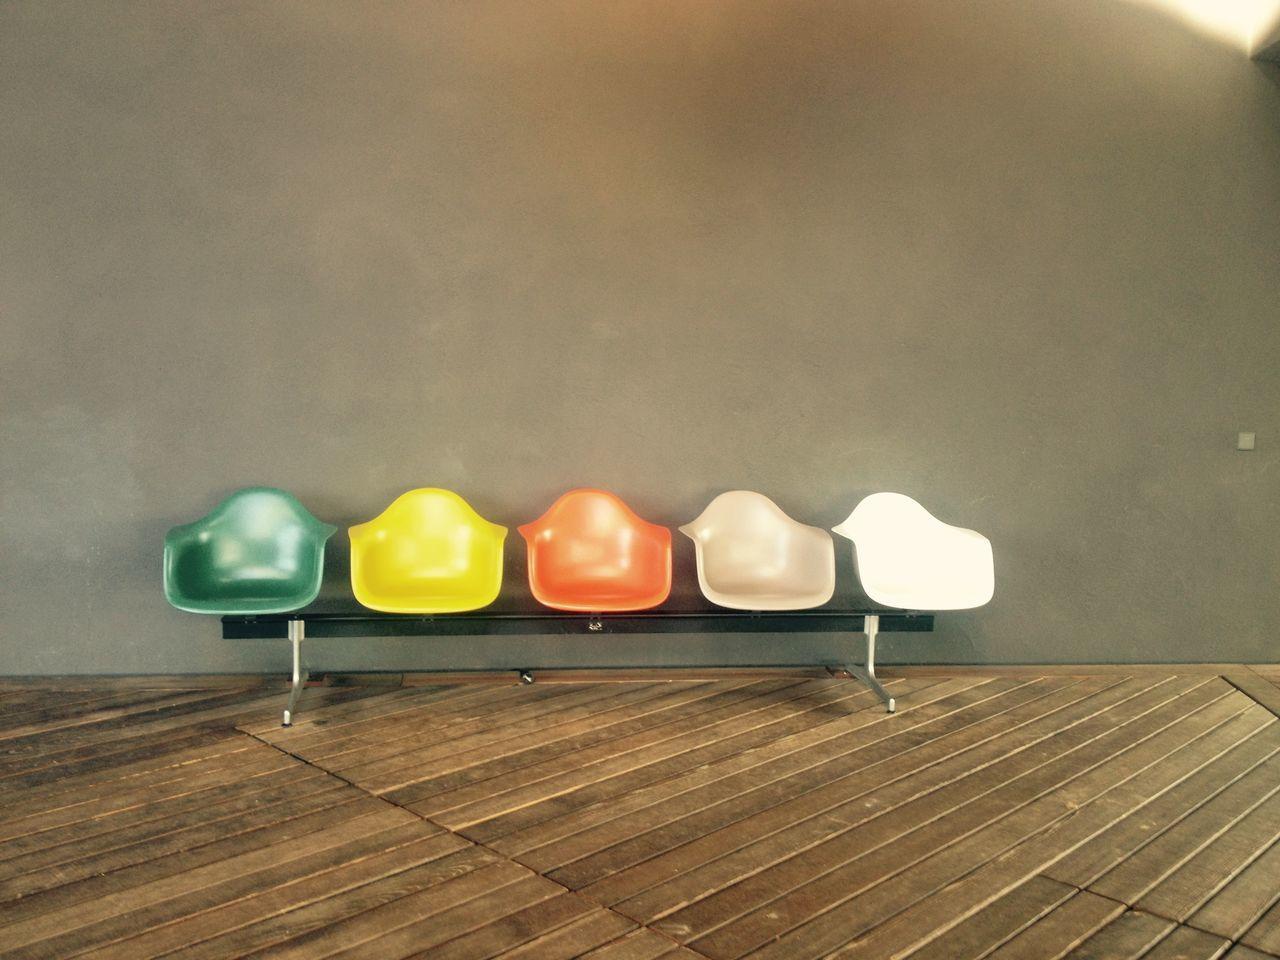 Bright Chairs Colors Design Eams Indoors  No People Scenics Vitra Haus